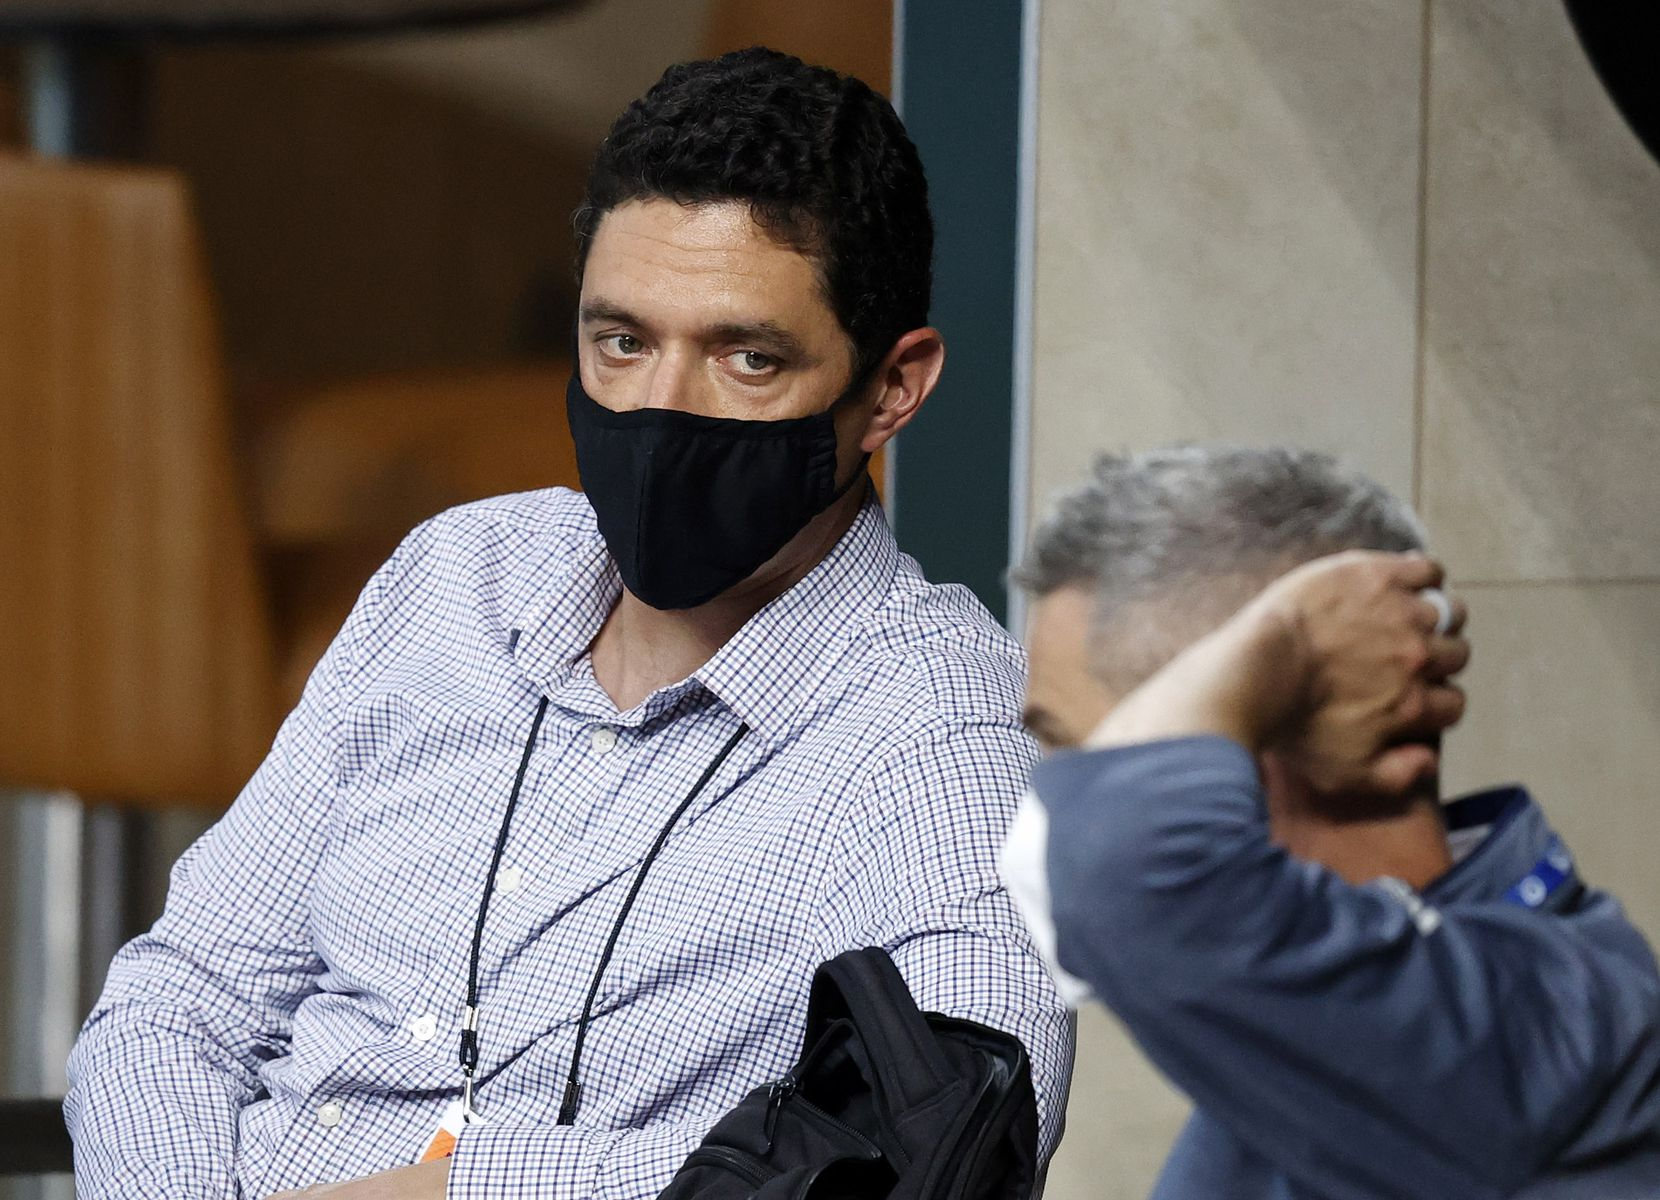 Texas Rangers general manager Jon Daniels (facing) visits with assistant general manager Josh Boyd as they watched an intrasquad game at Summer Camp inside Globe Life Field in Arlington, Texas, Friday, July 10, 2020. (Tom Fox/The Dallas Morning News)